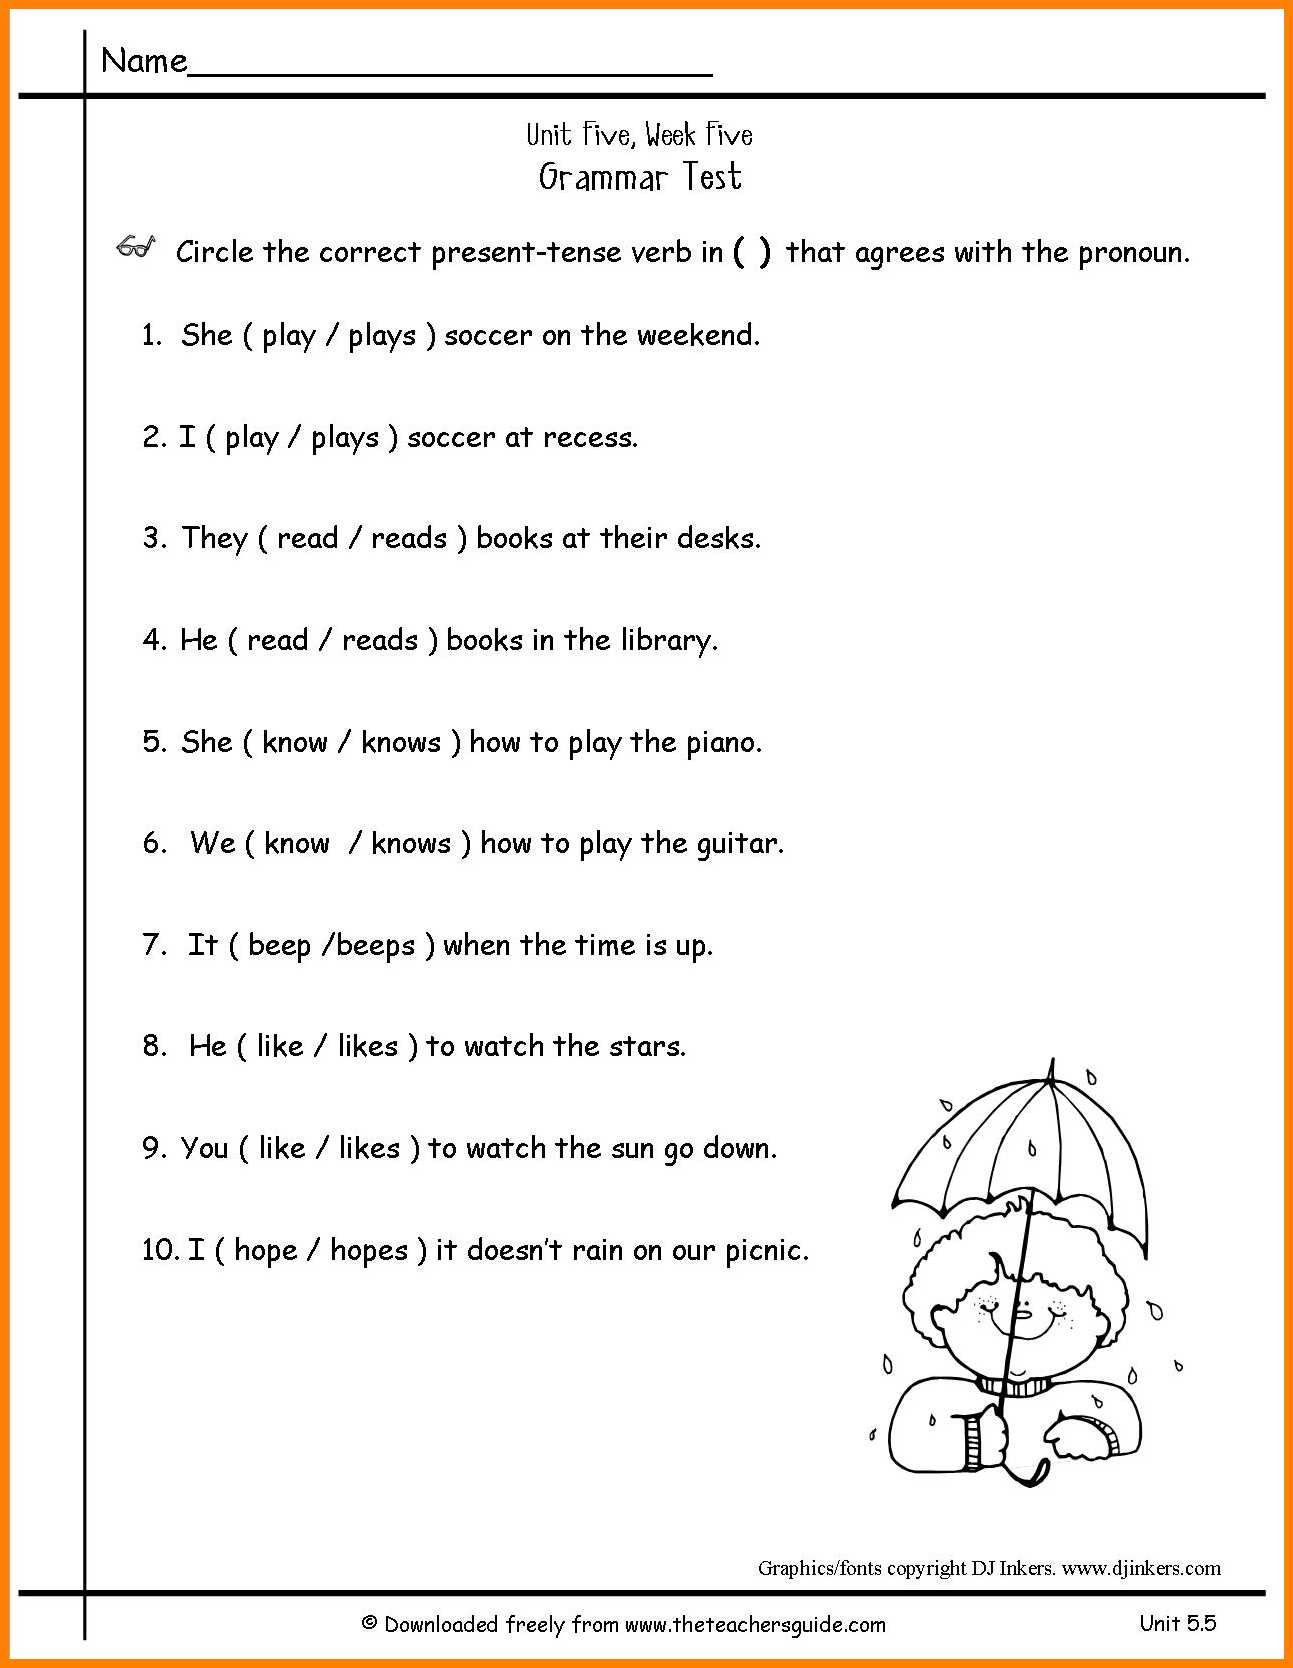 Pronoun Worksheets 6th Grade Pronoun Worksheets 7th Grade